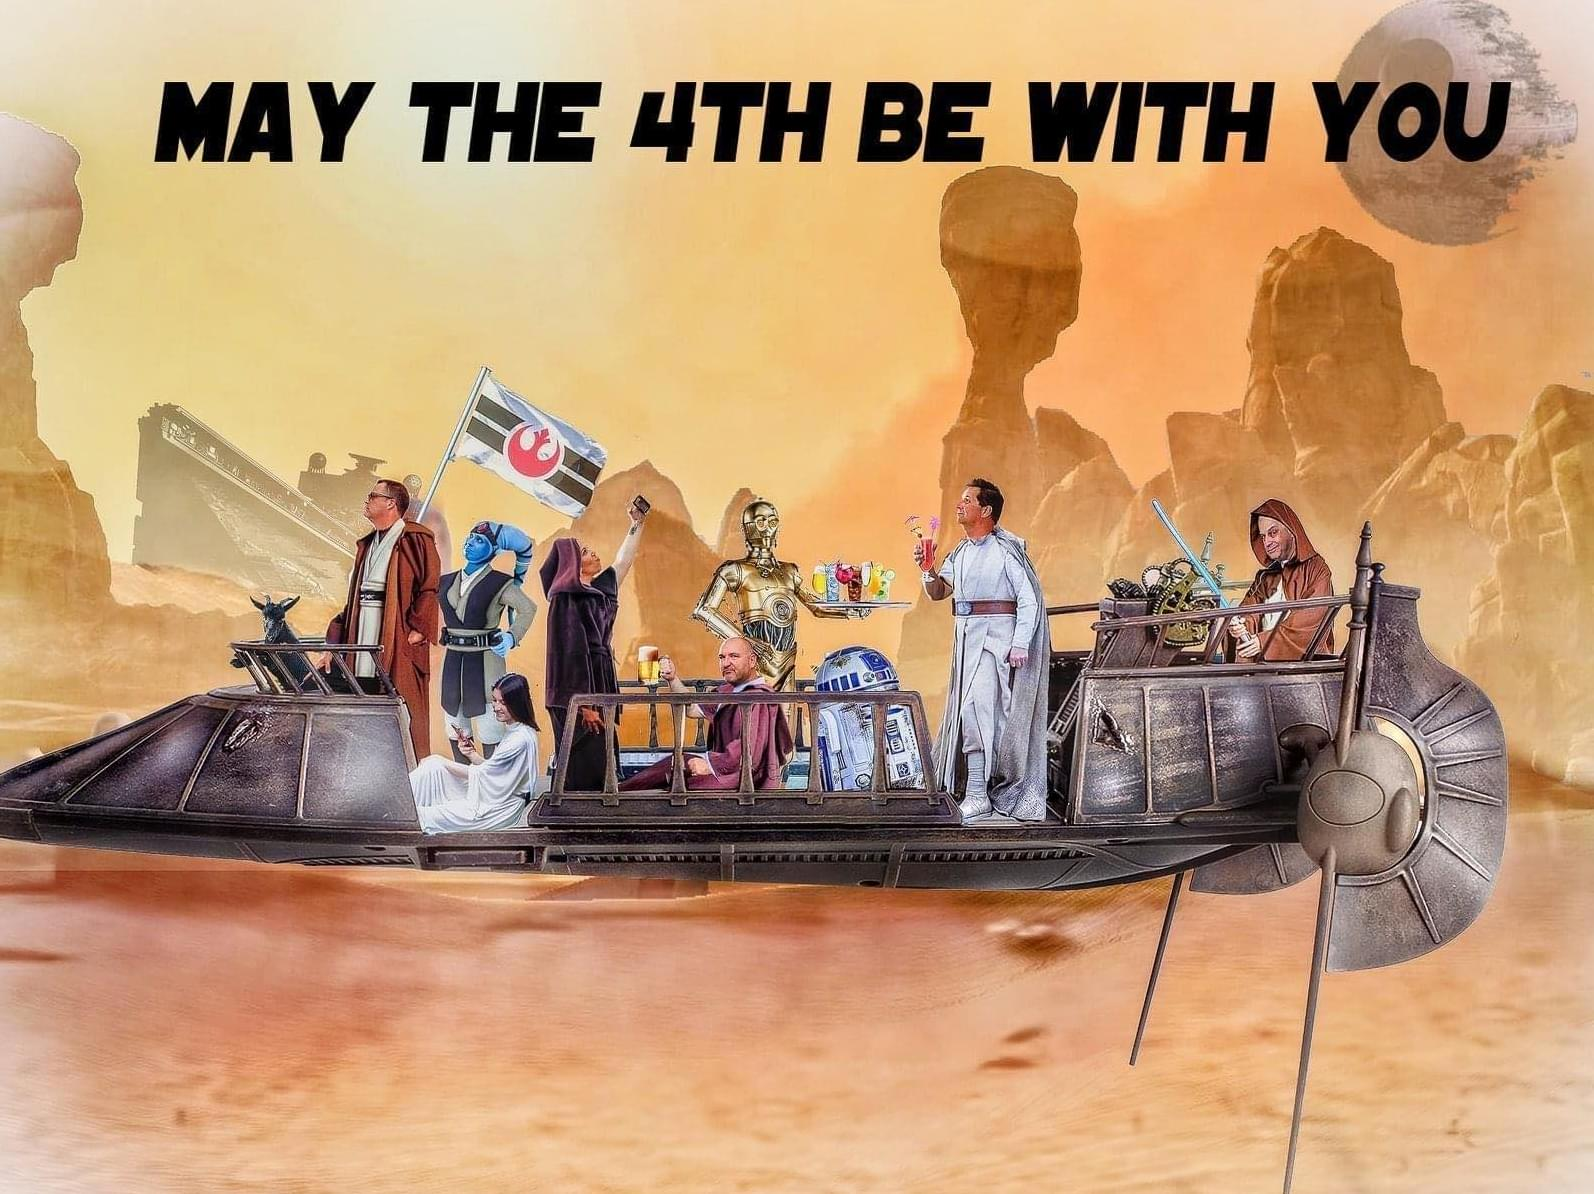 May the 4th be with you Jedis